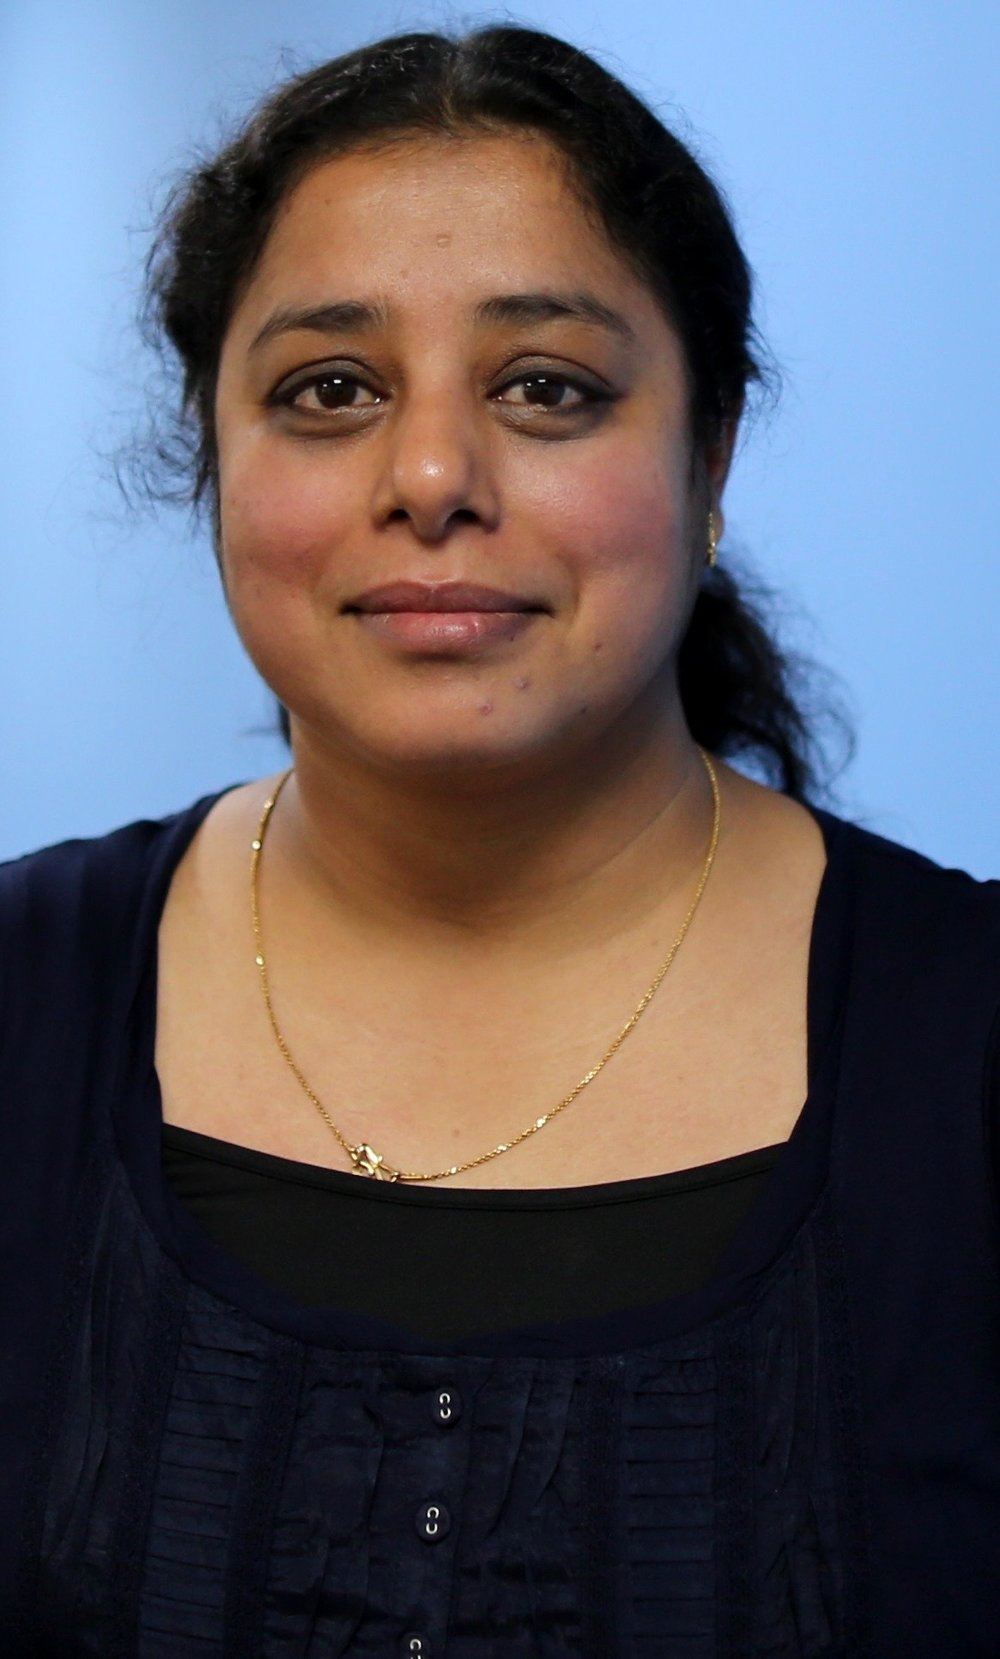 Dr Malicka Chakrabarty (f)   GP Partner - based at Oakleaf & Larwood  MBBS,DNB, MRCS, PGCertHE, MRCGP, DGM, DFSRH, Palliative Care (Teeside University) DRCOG  Graduate of Bhopal University  Special Interest in Training, Women's Health, Minor Ops and Joint Injections  Available: available: Monday, Tuesday, Wednesday & Friday